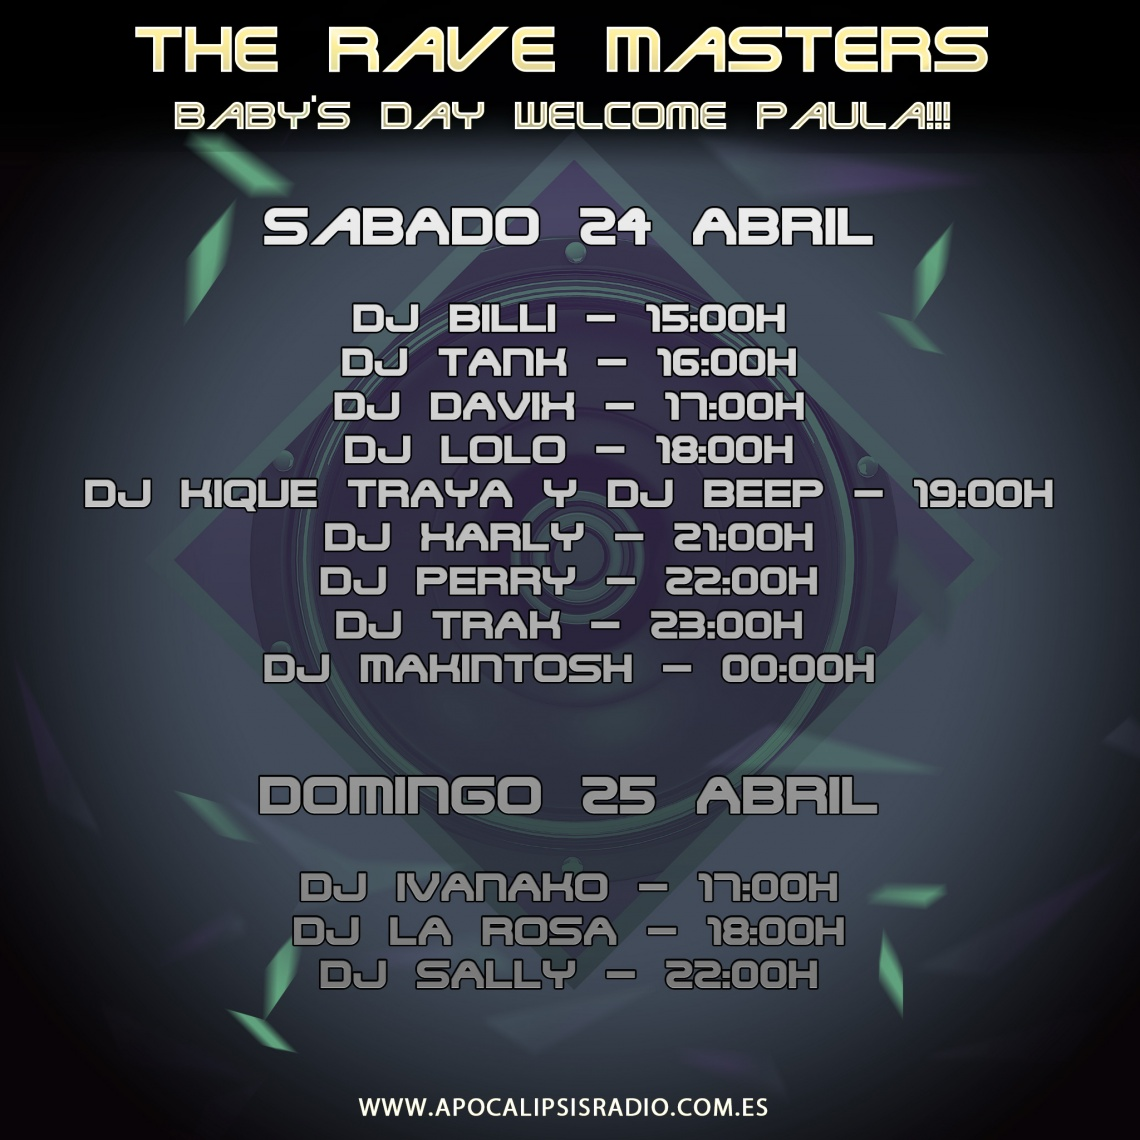 The Rave Masters - Baby's Day Welcome Paula!!!